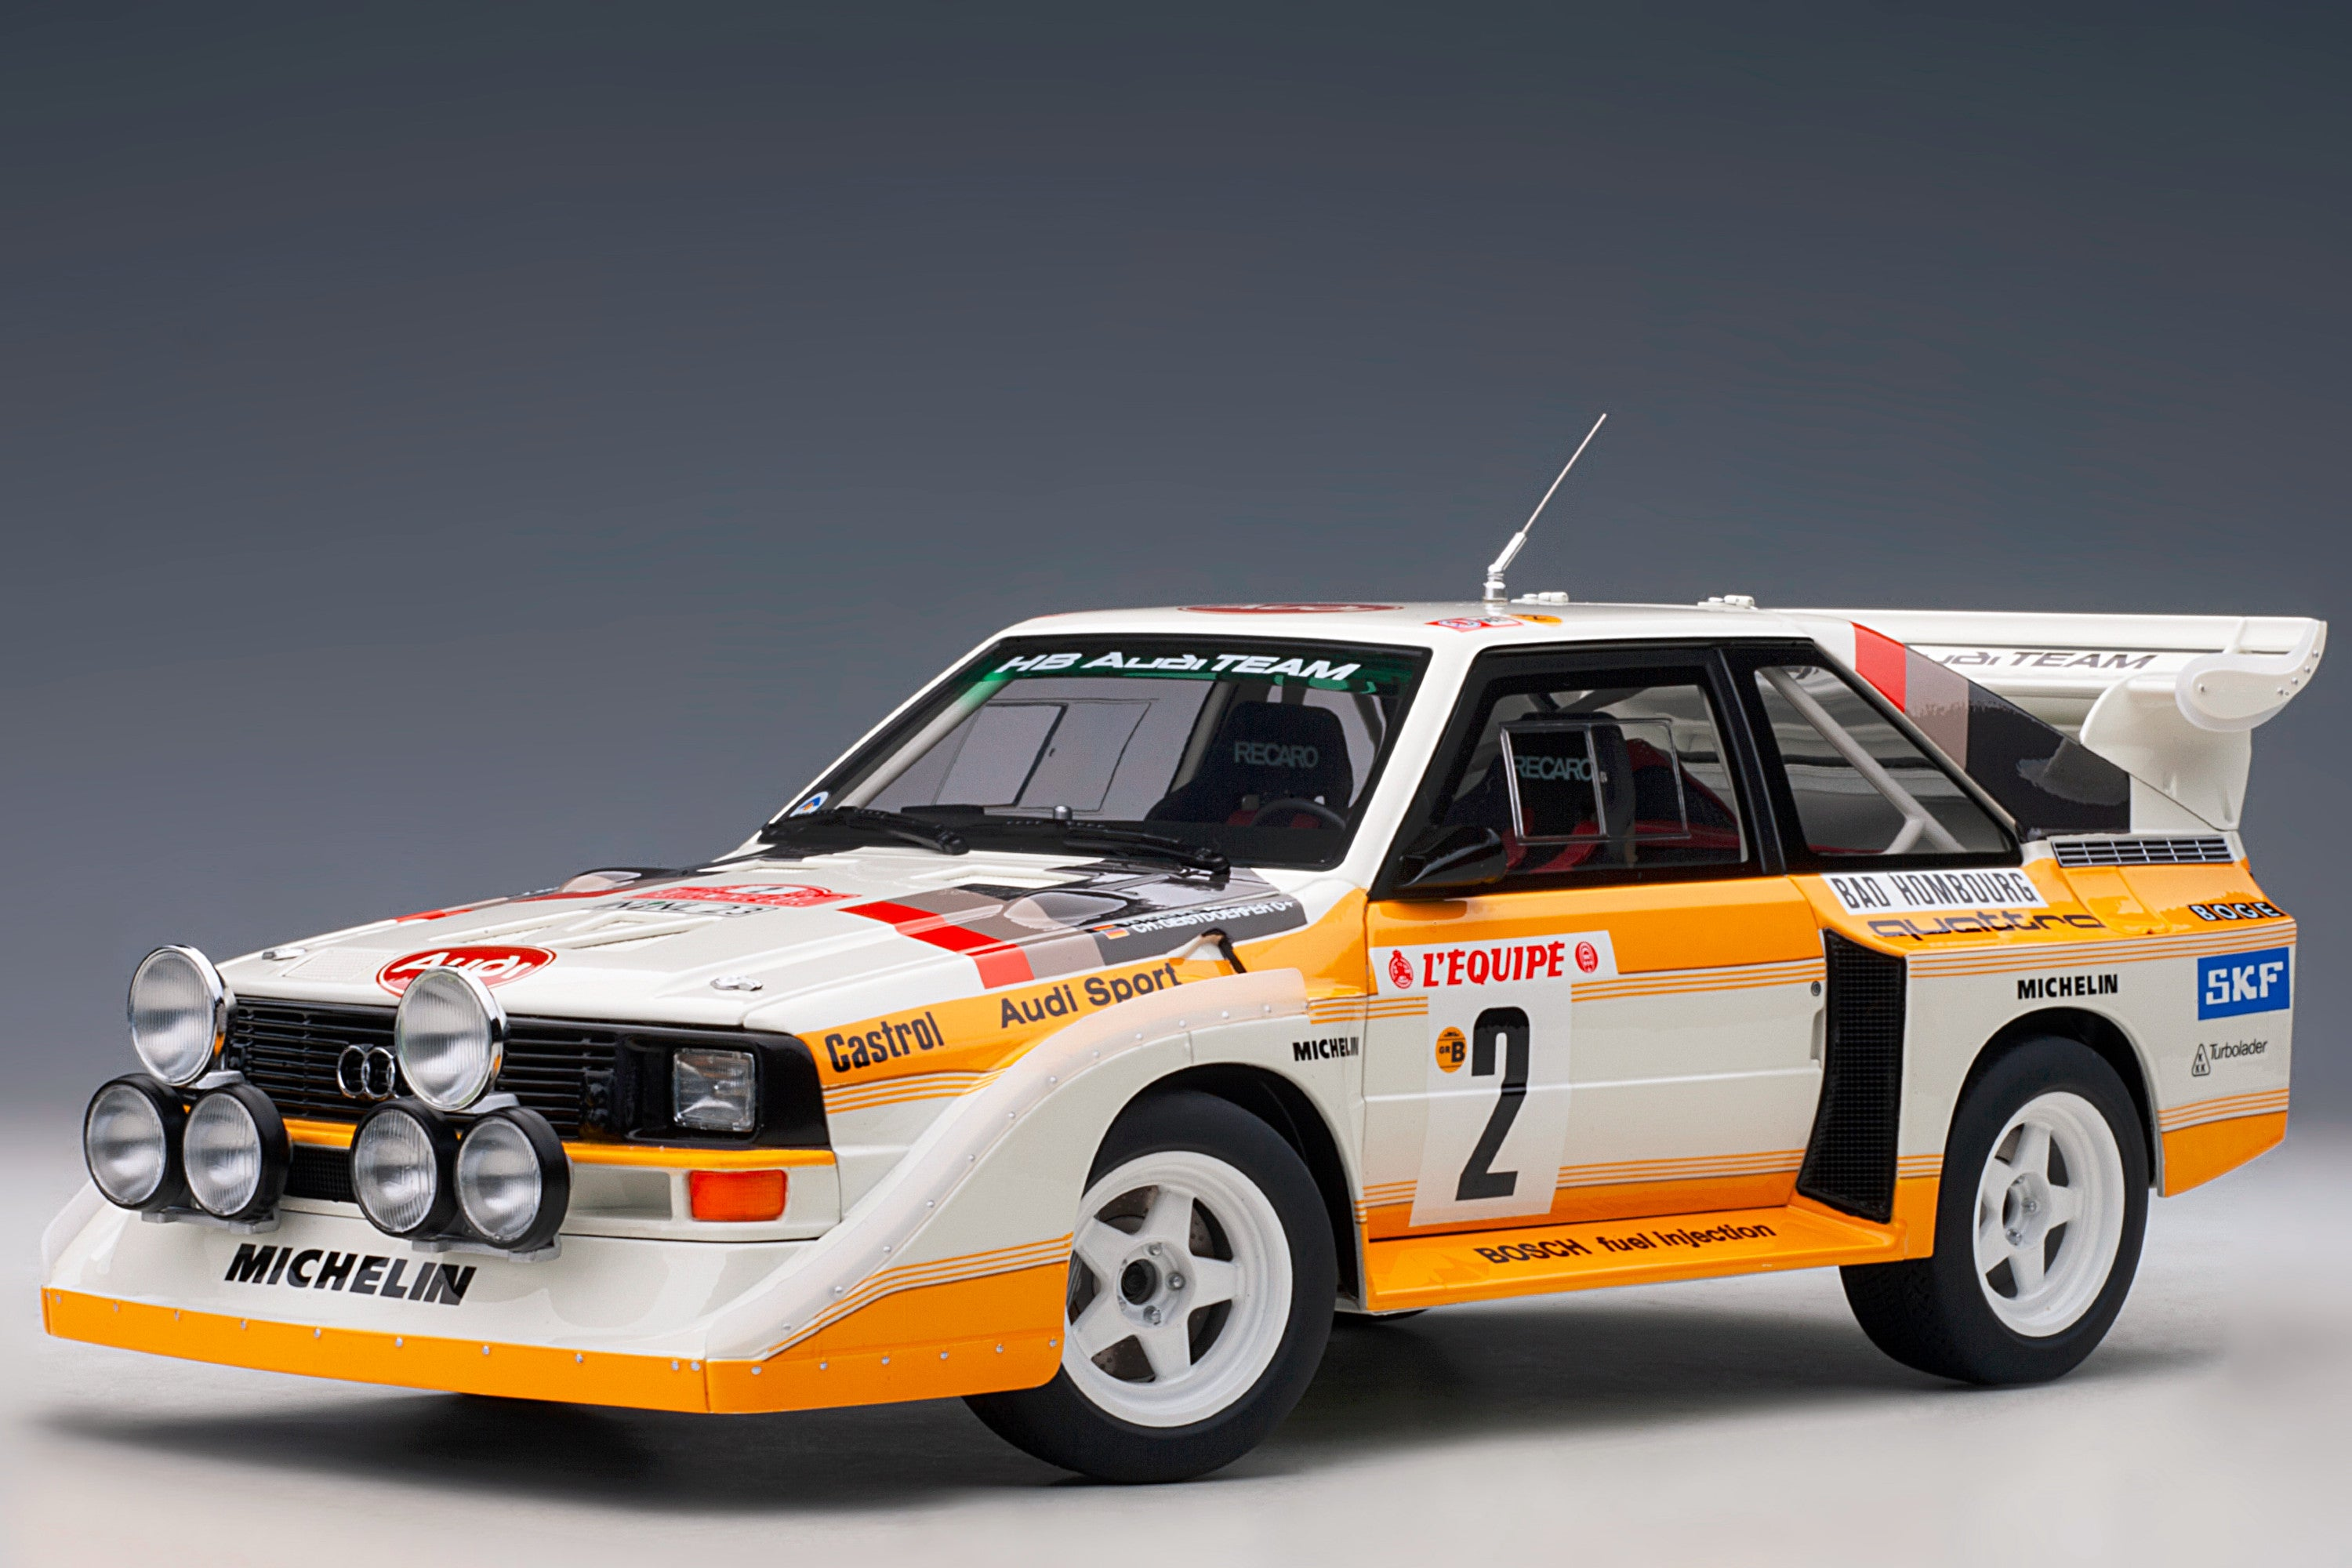 Audi Sport Quattro (1986 Monte Carlo Rally Winner) | 1:18 Scale Model Car by AUTOart | Front Quarter